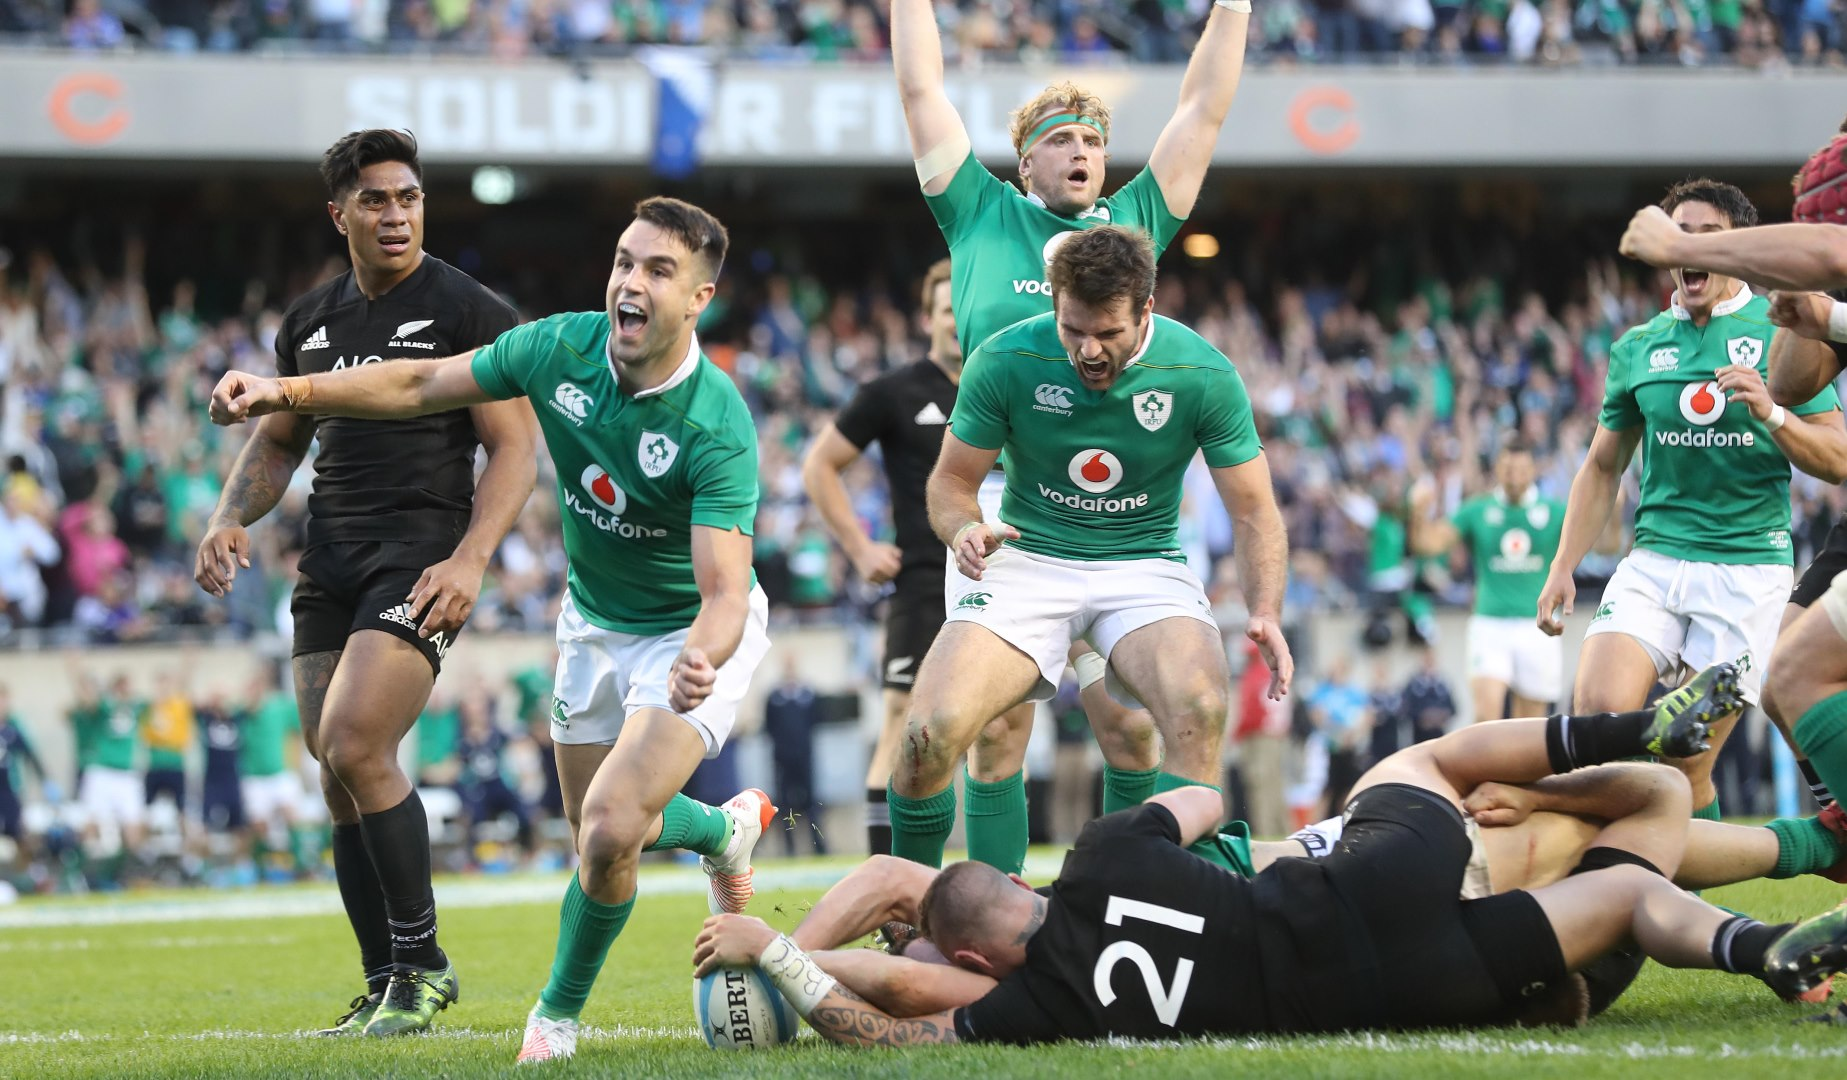 LionsWatch: Ireland claim historic first win over the All Blacks